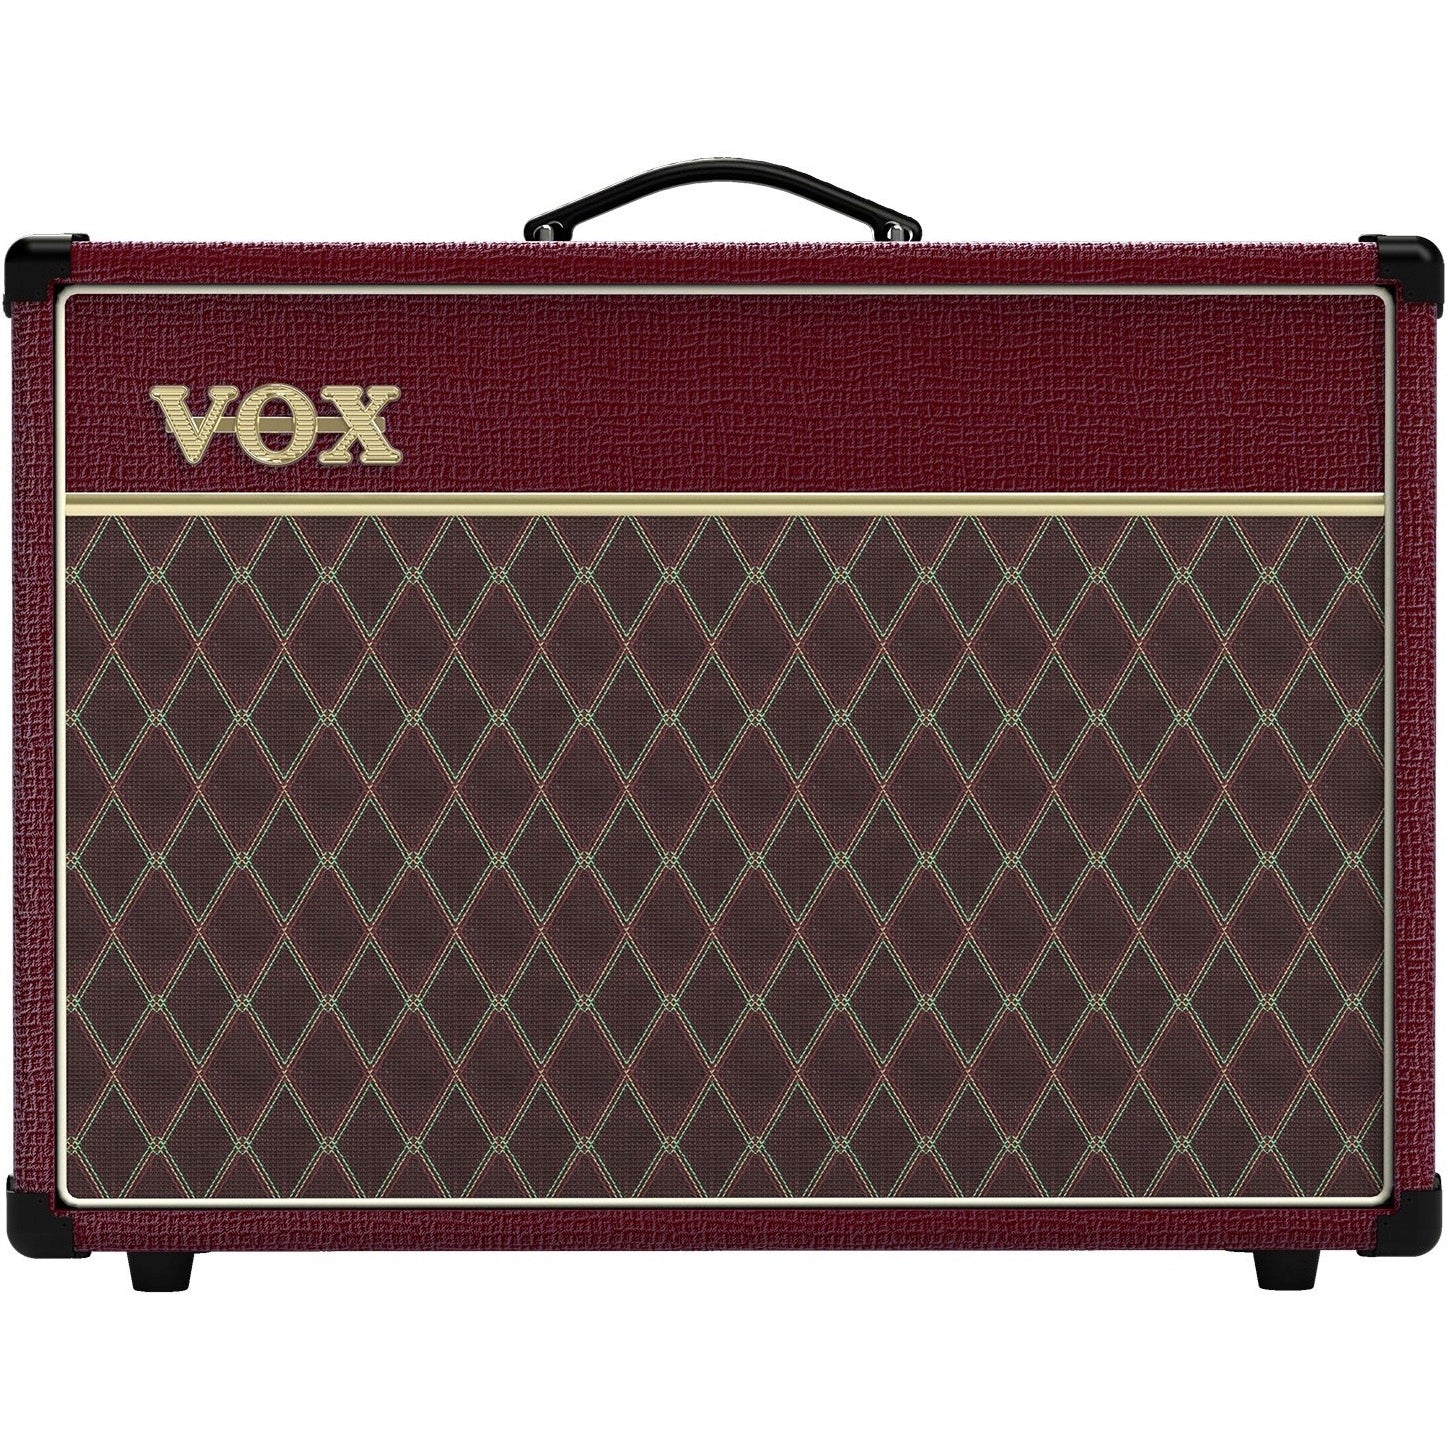 "Vox AC15C1-MB Limited Edition Maroon Bronco 15W 1x12"" Guitar Tube Combo Amp 